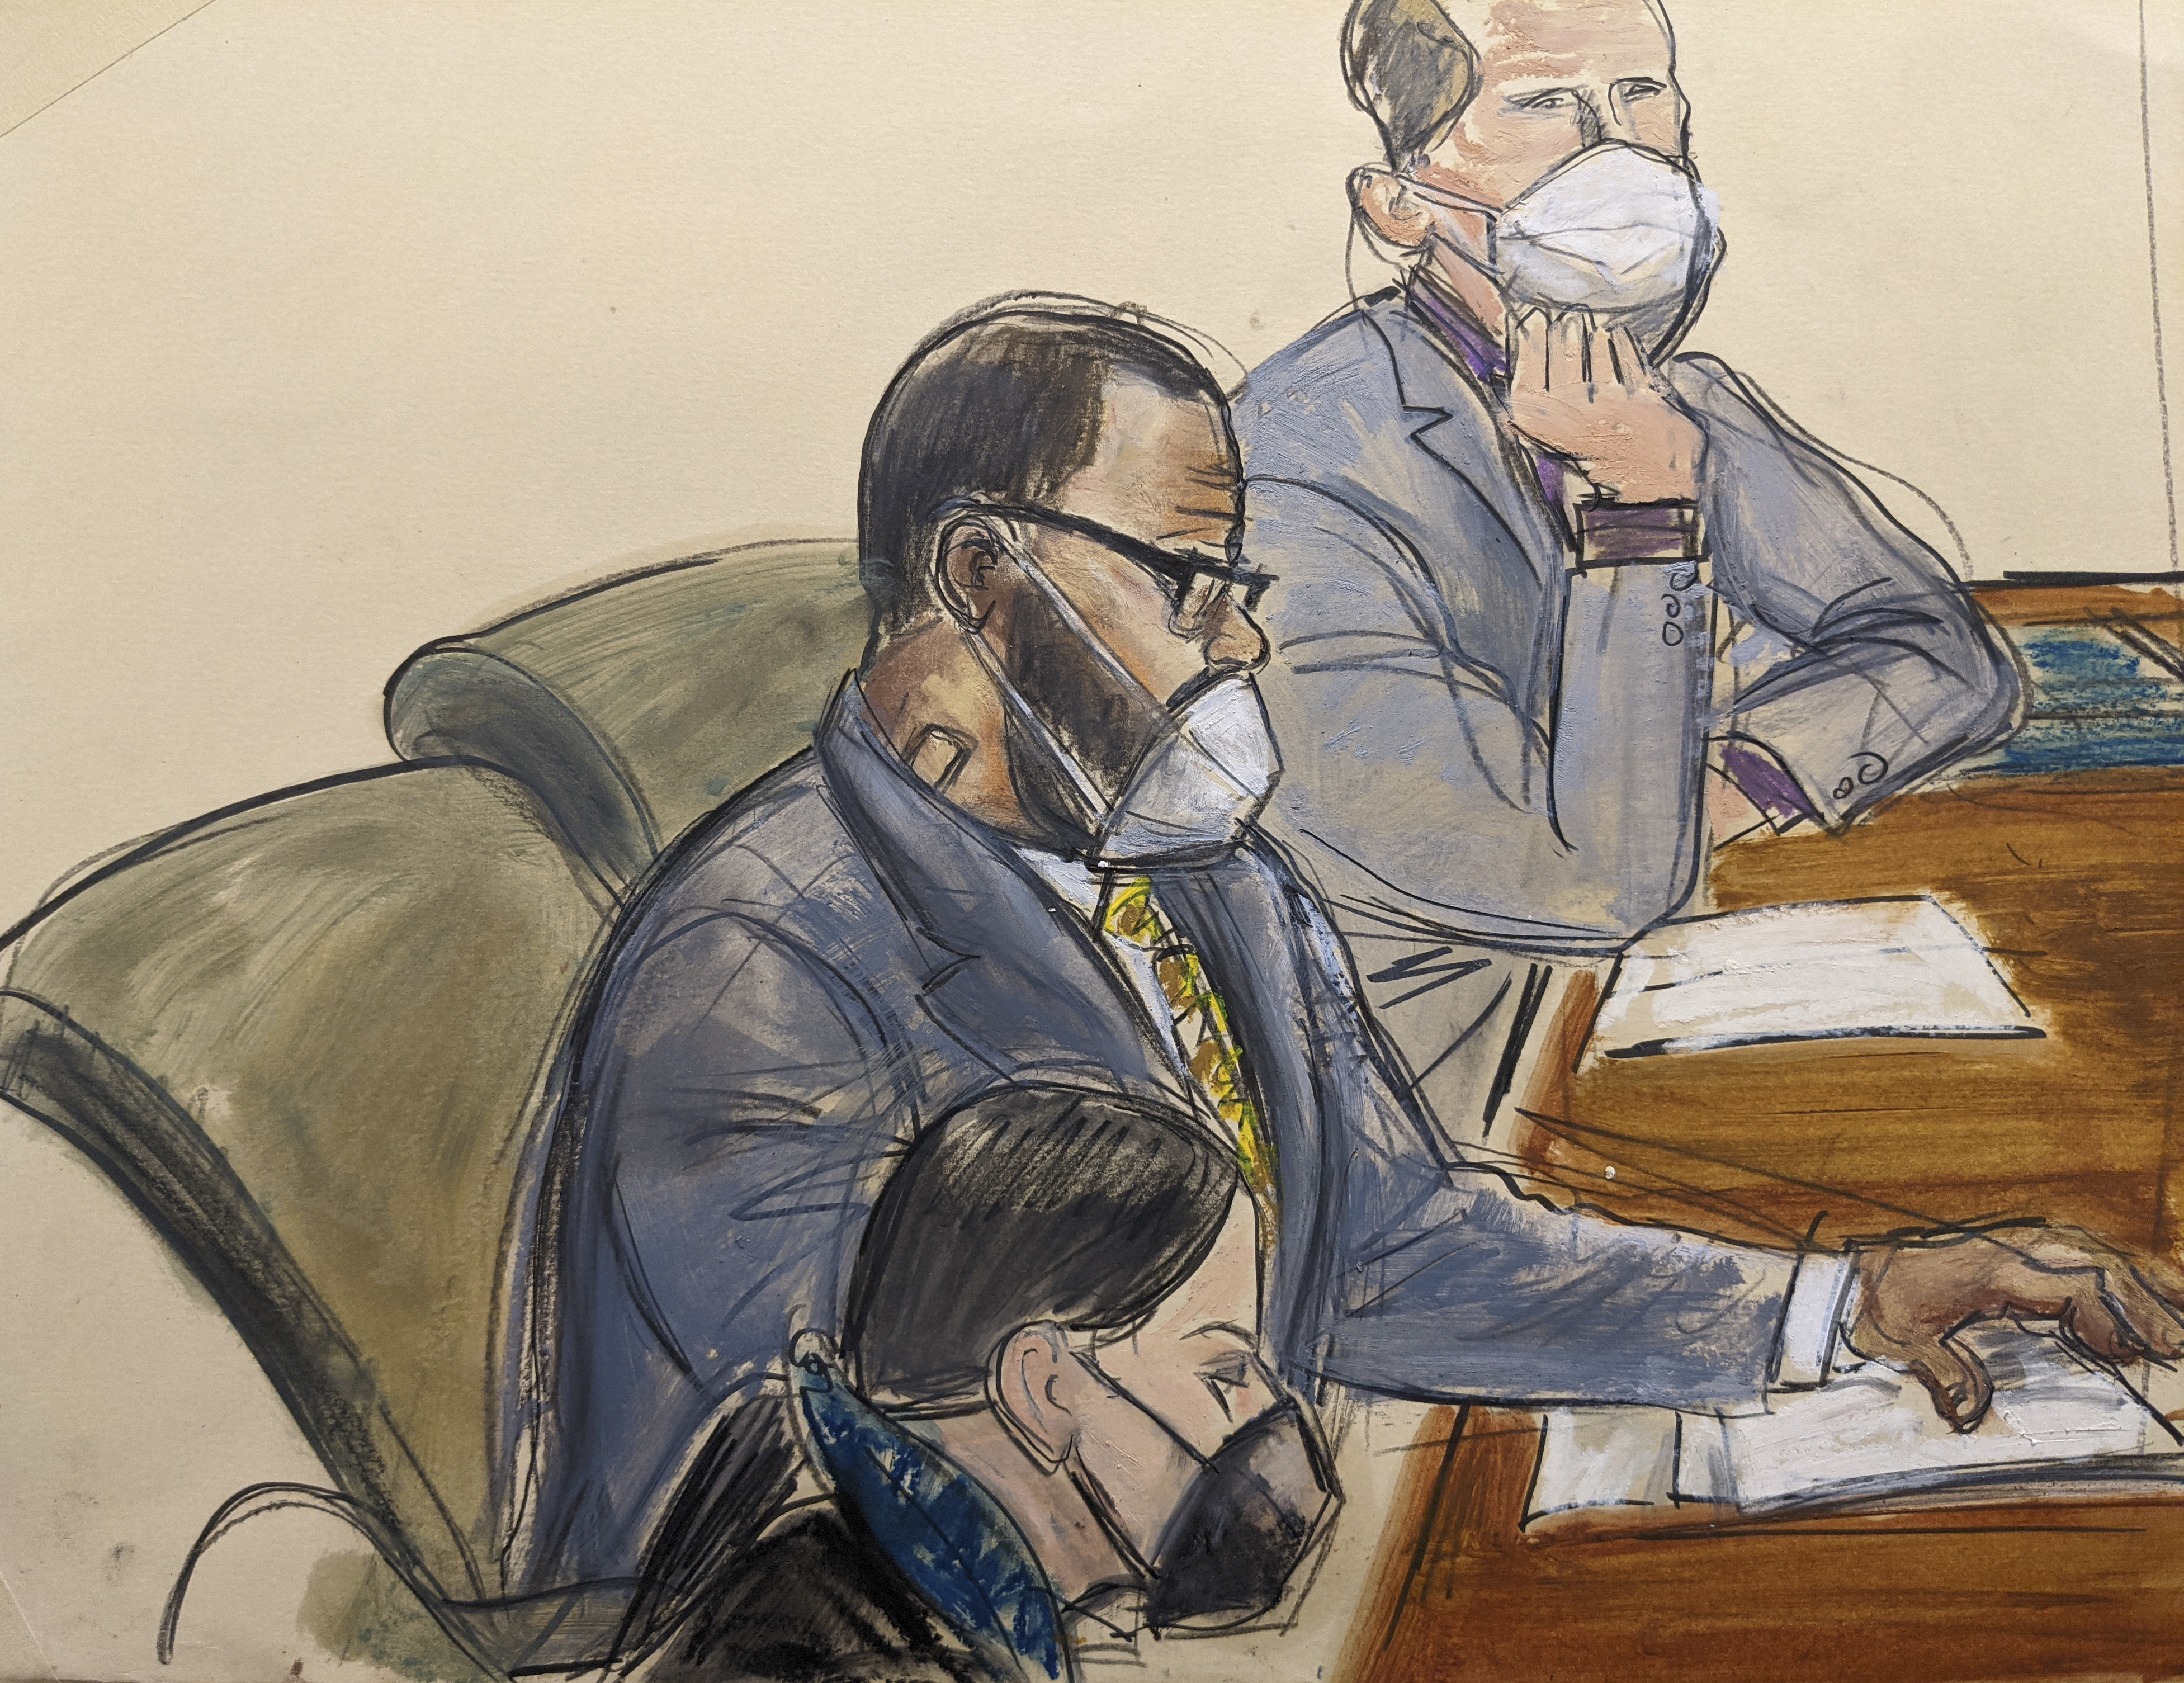 In thisIn this courtroom sketch, R. Kelly, center, sits with his defense attorneys Thomas Farinella, top, and Nicole Blank Becker during the first day of his defense in his sex trafficking case, Monday, Sept. 20, 2021, in New York. courtroom sketch, R. Kelly, center, sits with his defense attorneys Thomas Farinella, top, and Nicole Blank Becker during the first day of his defense in his sex trafficking case, Monday, Sept. 20, 2021, in New York.